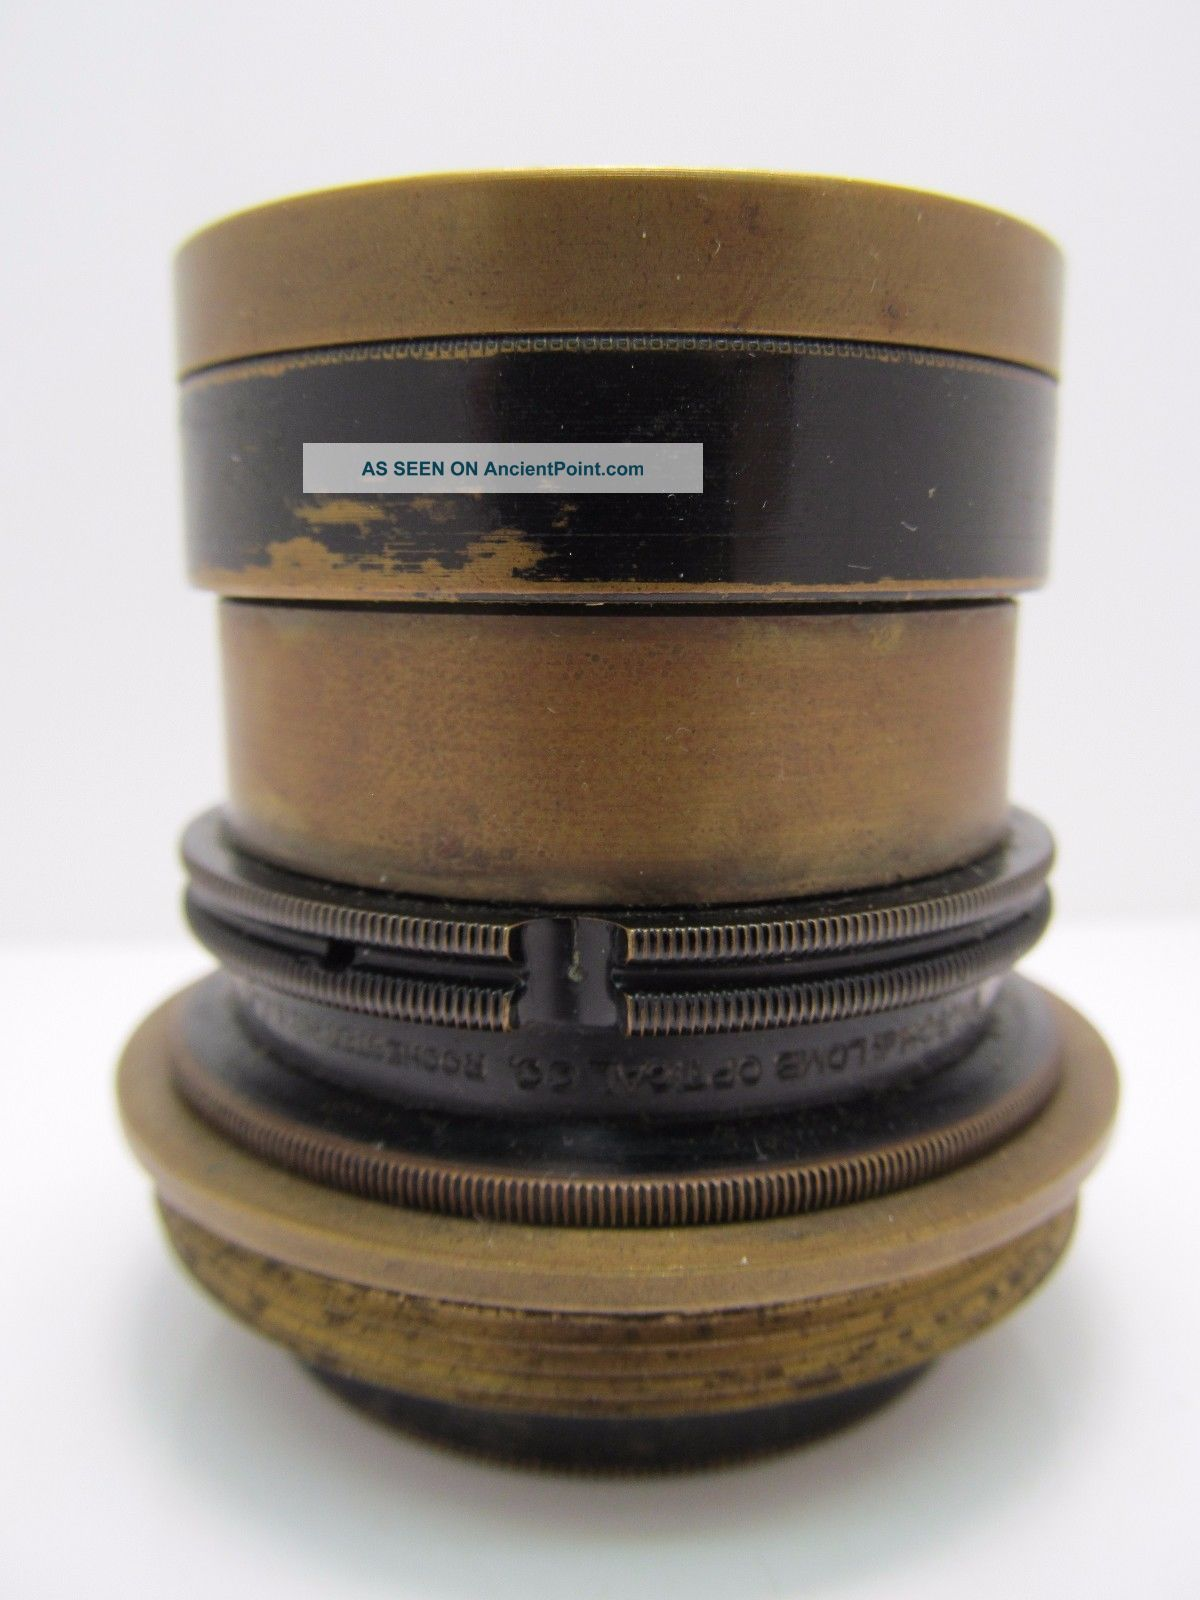 Antique Bausch & Lomb Brass Lens Optic Microscope? Camera? 50mm Unknown Wow Nr Microscopes & Lab Equipment photo